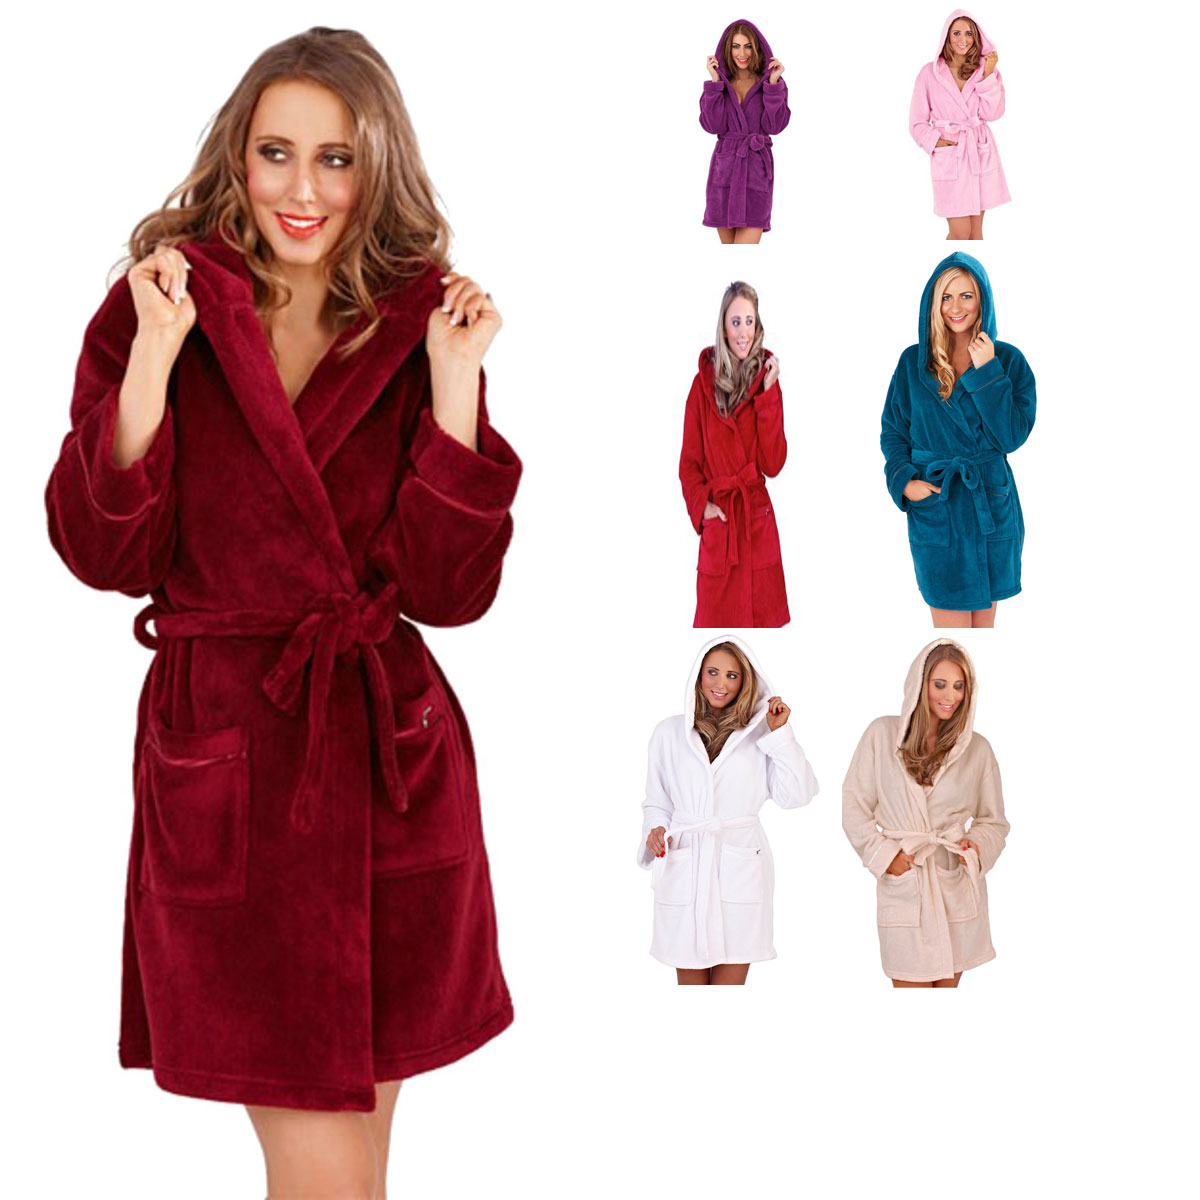 d798629fad Womens Soft Hooded Short Bath Robe Dressing Gown Housecoat Ladies Girls  Luxury